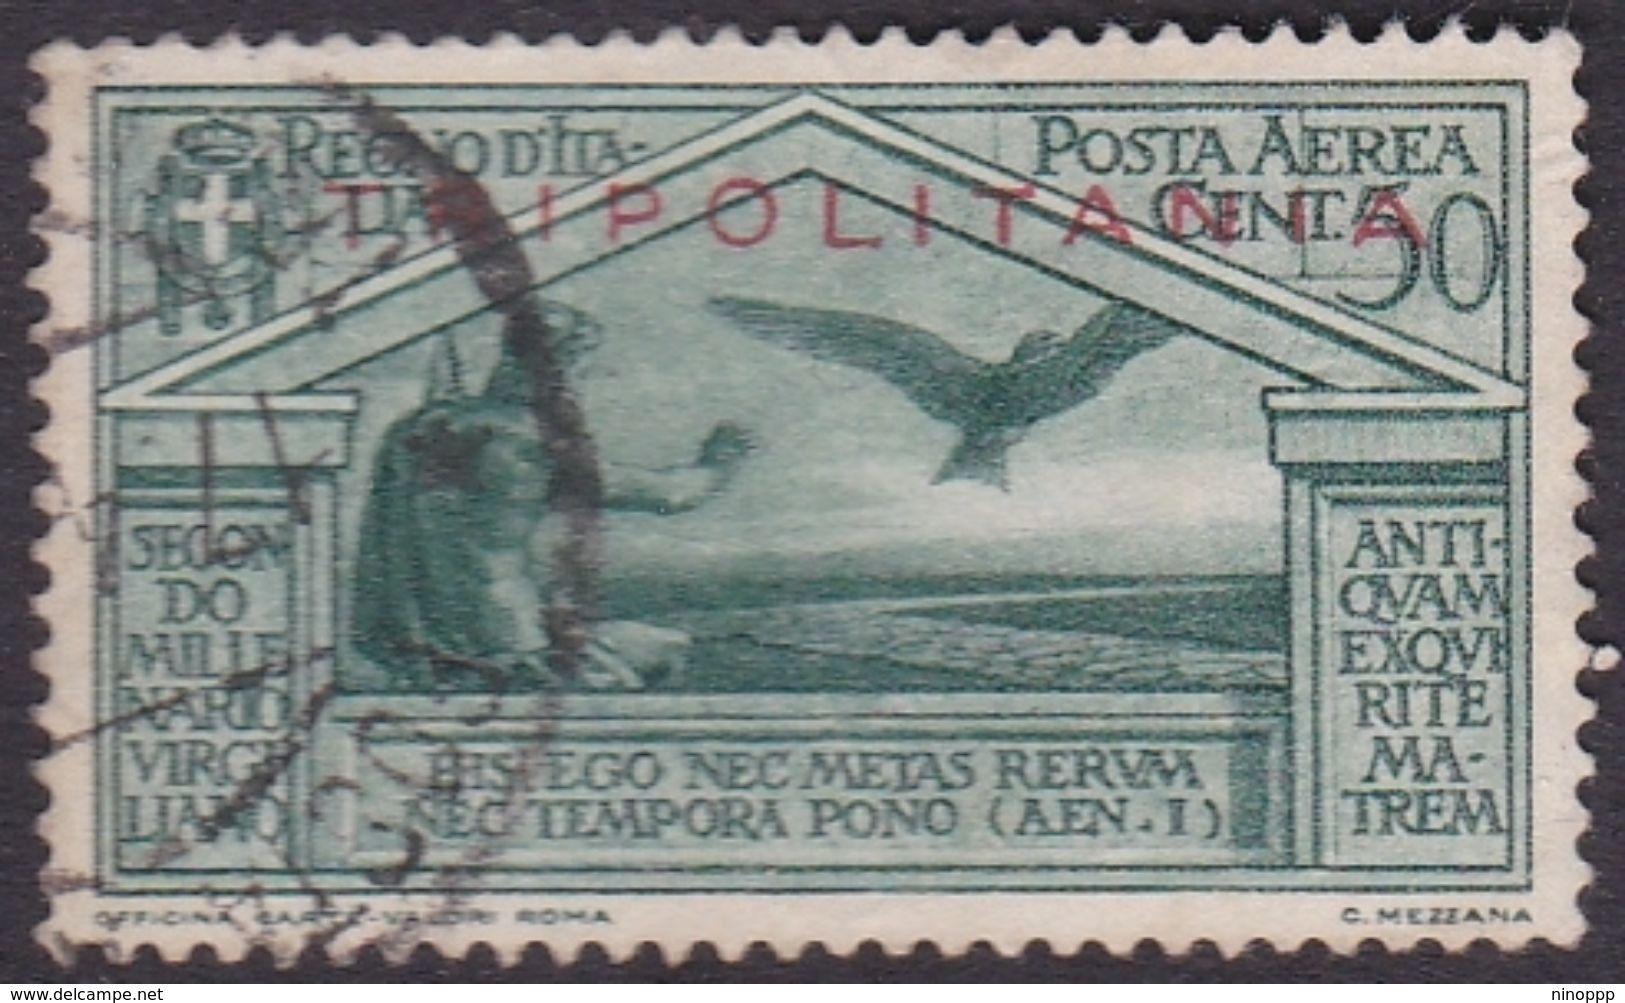 Italy-Colonies And Territories-Tripolitania A4  1930 Virgil,50c Green Used - Tripolitania